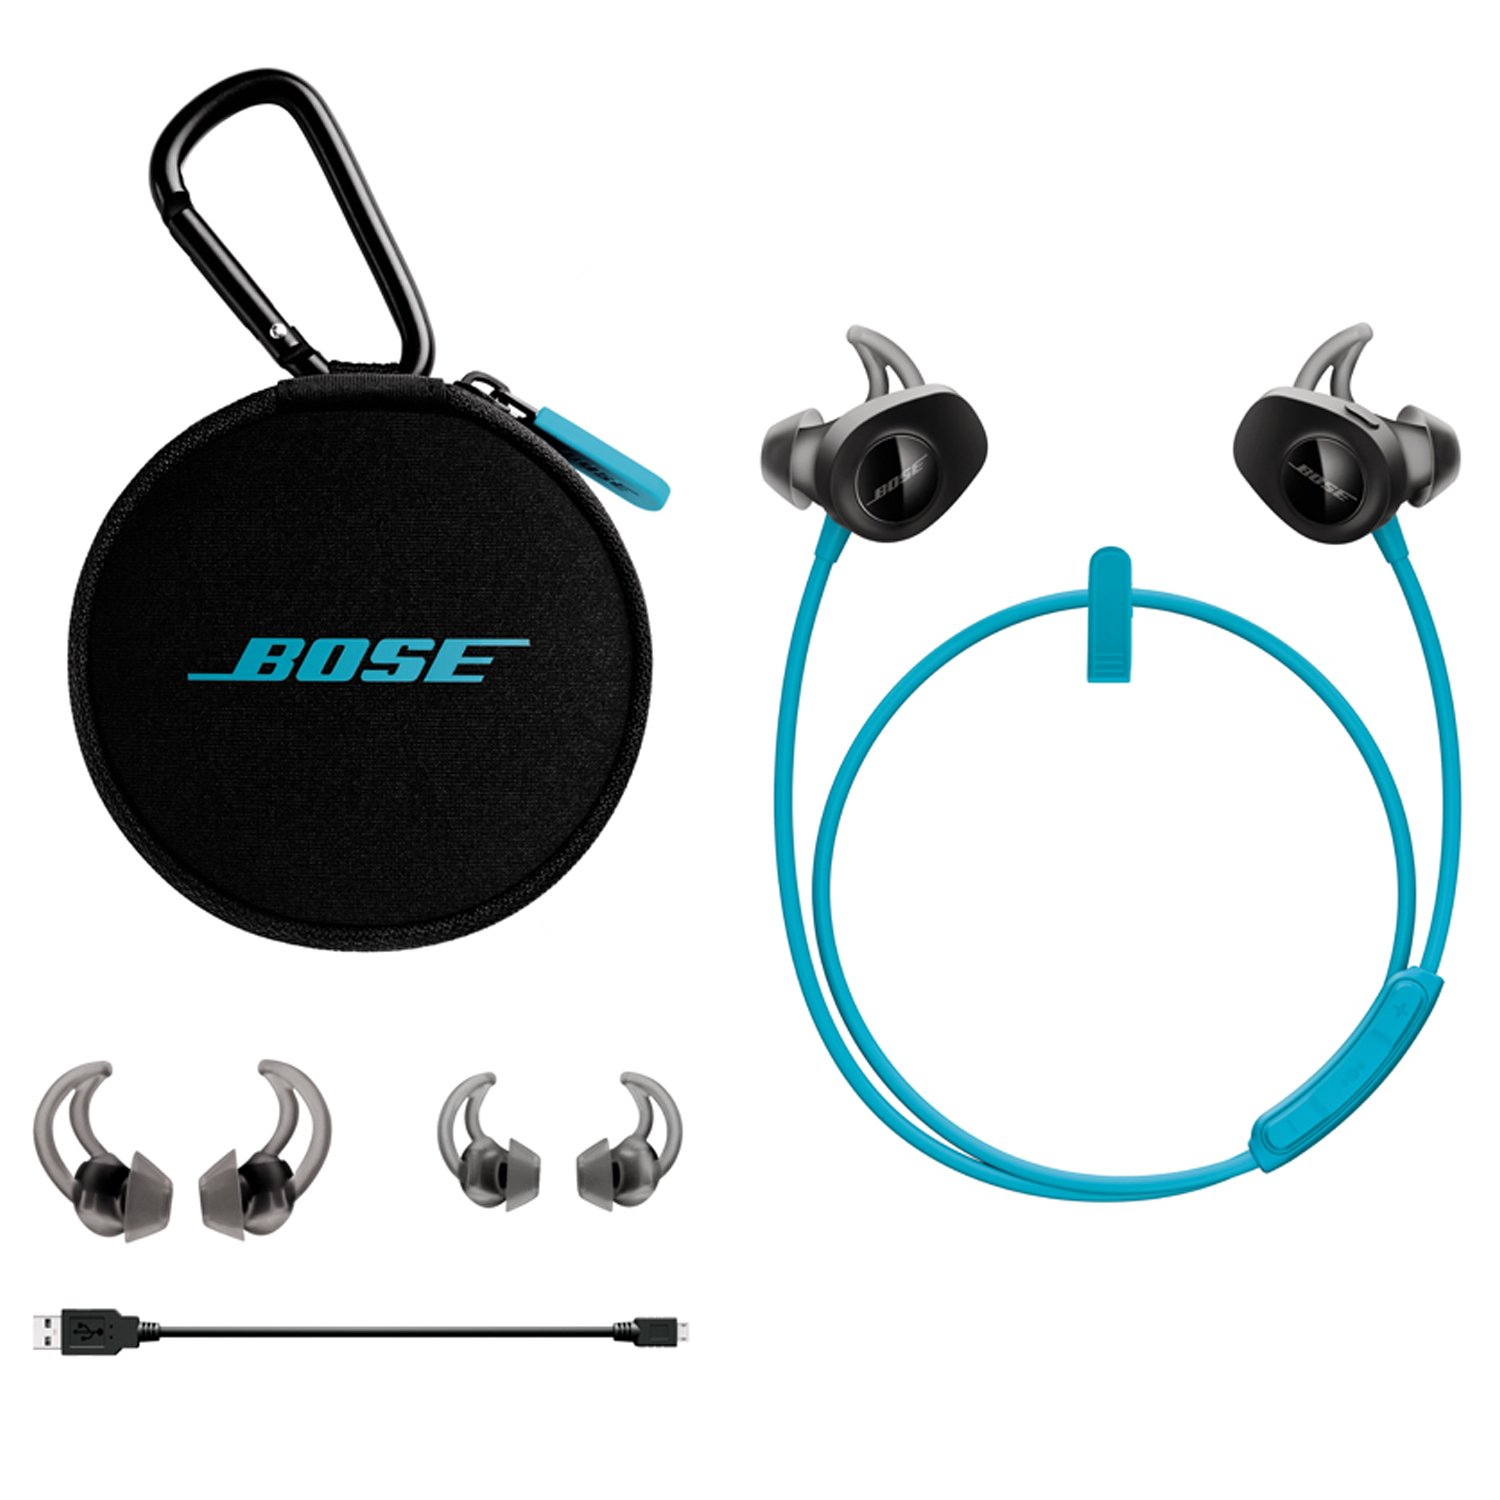 bose in ear wireless headphones. bose in ear wireless headphones t